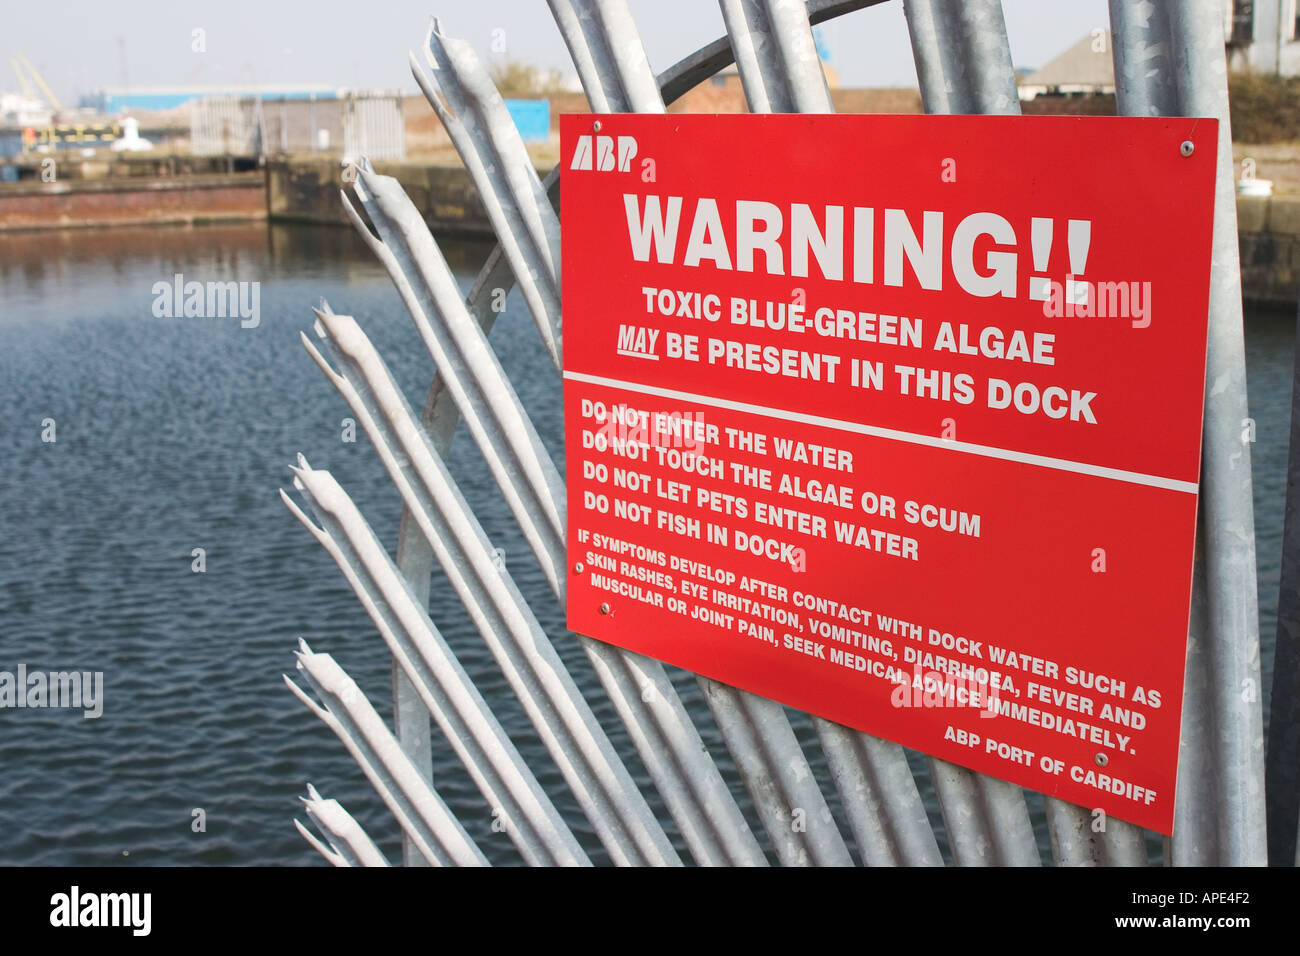 Warning sign for toxic blue green algae in Cardiff Bay docks Cardiff South Wales UK - Stock Image